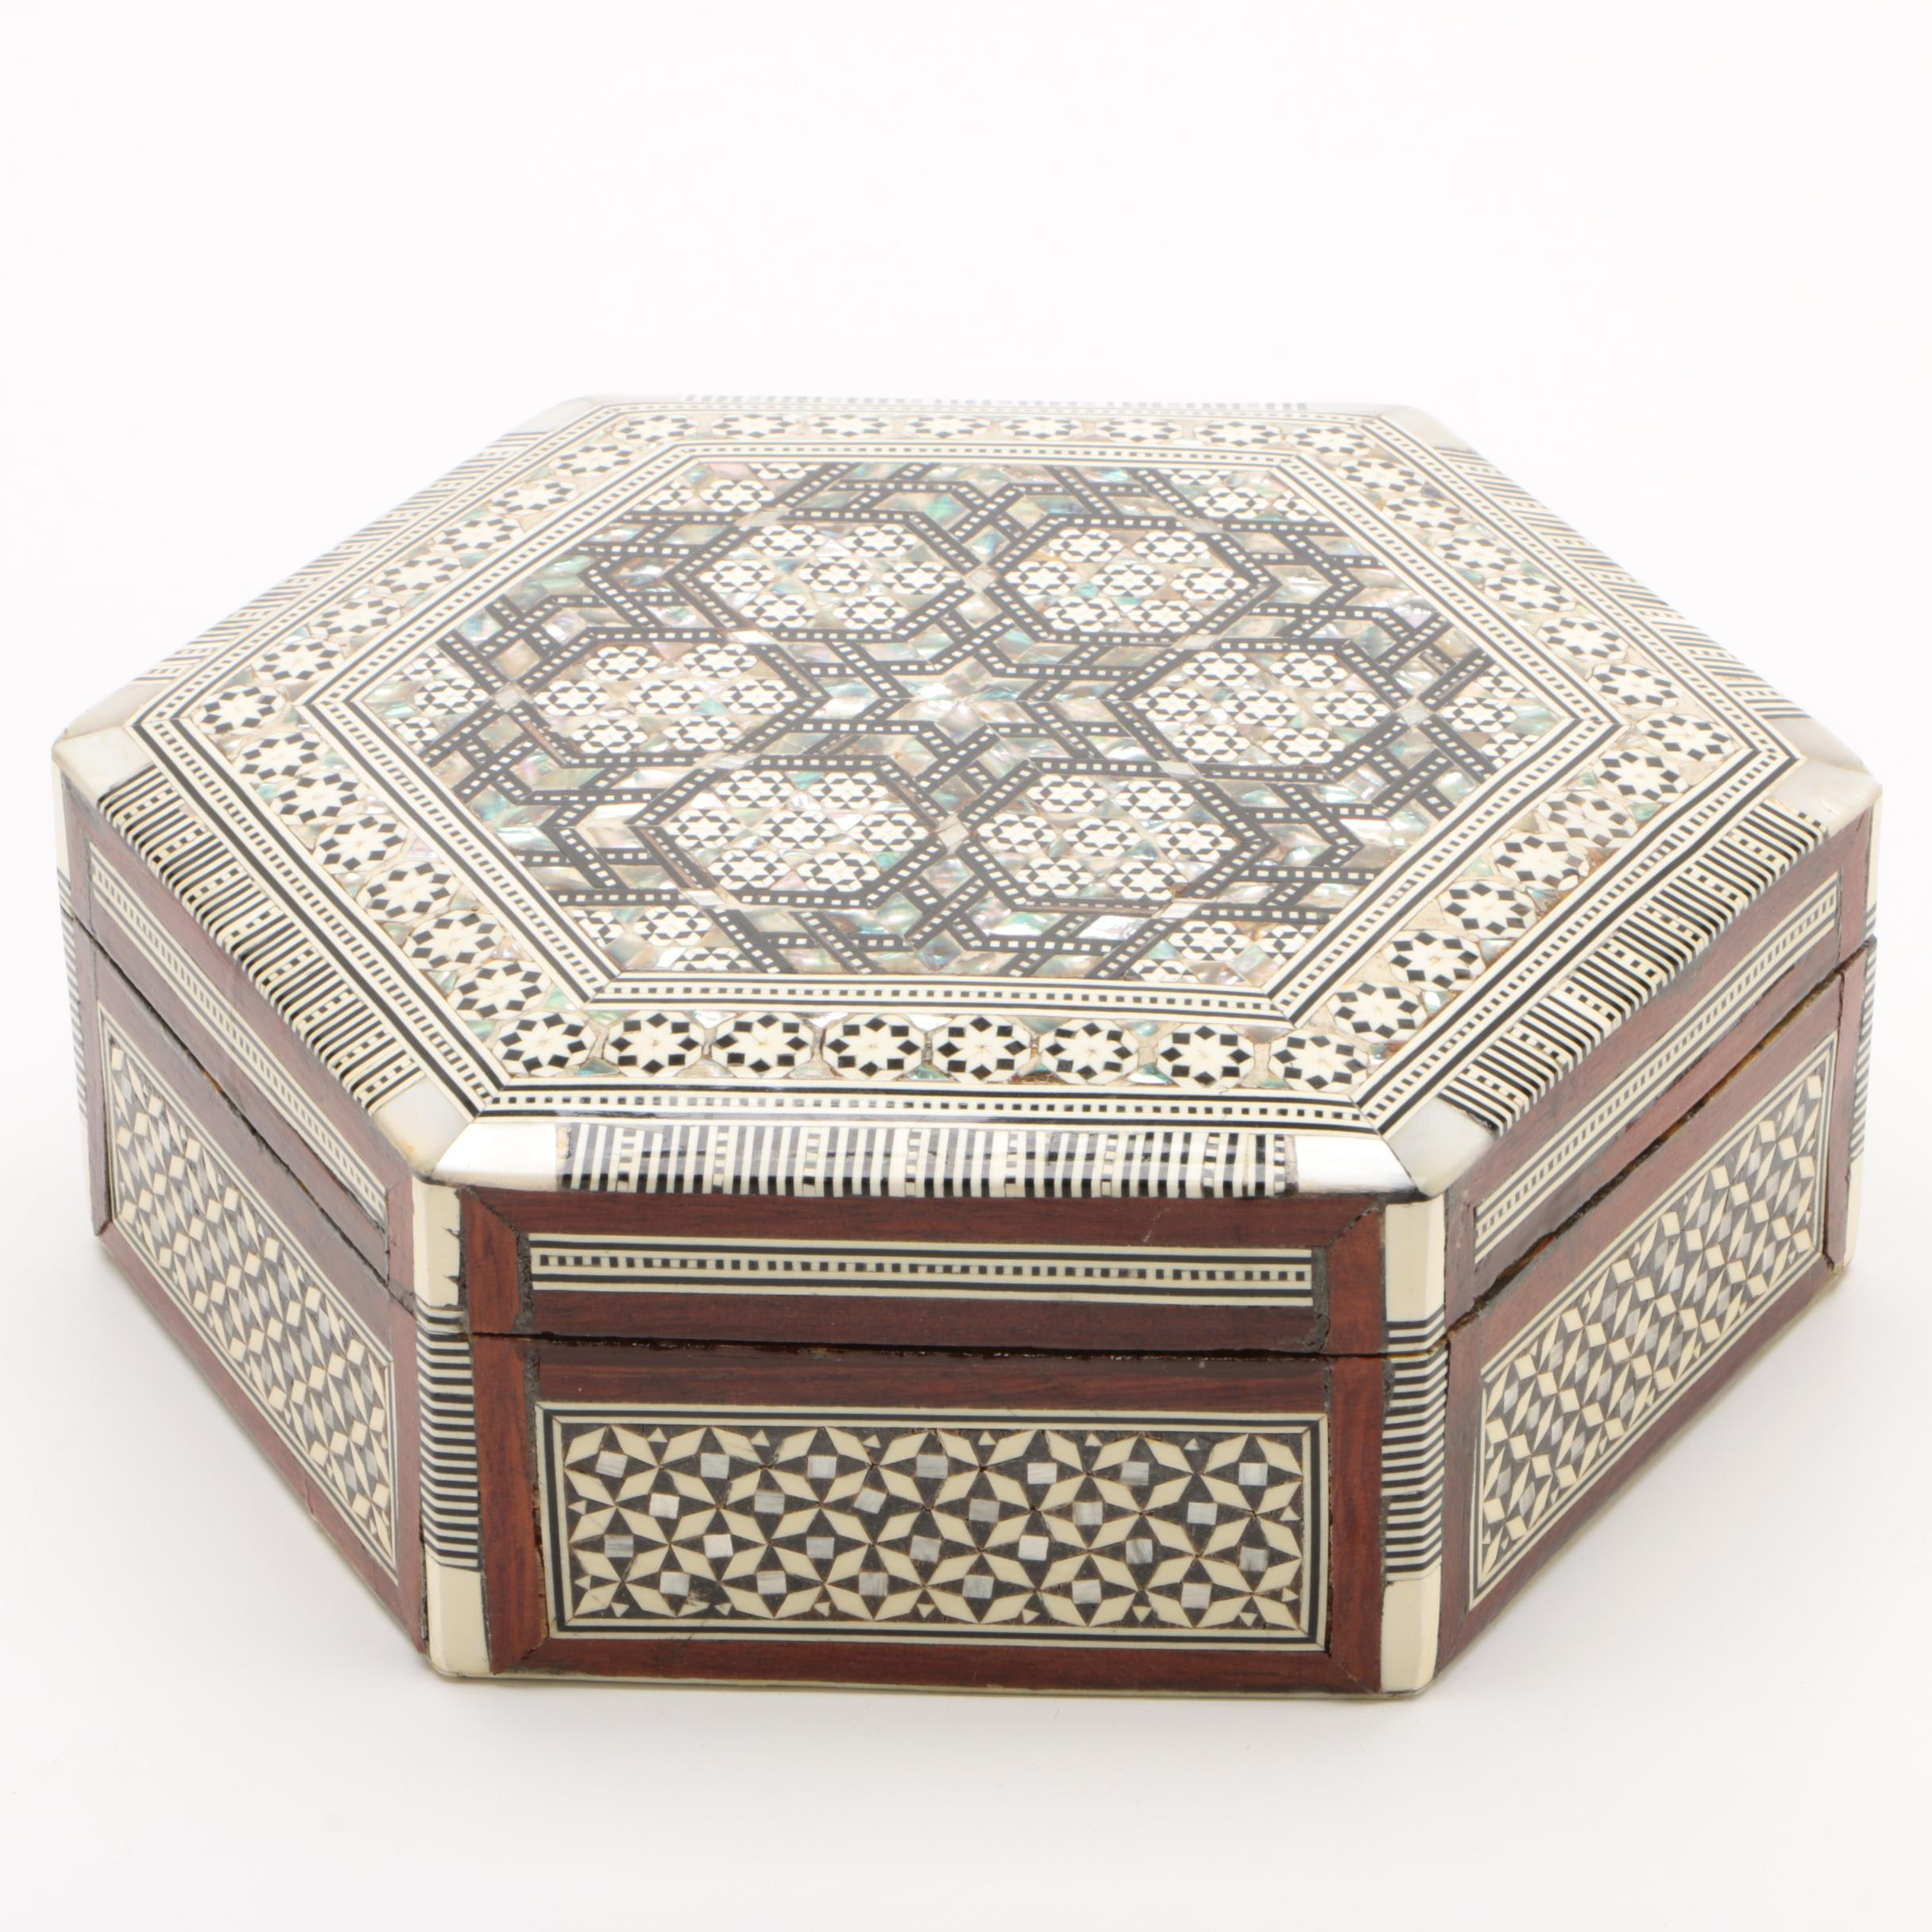 Moorish Hardwood, Mother-of-Pearl and Parquetry Box, 20th Century